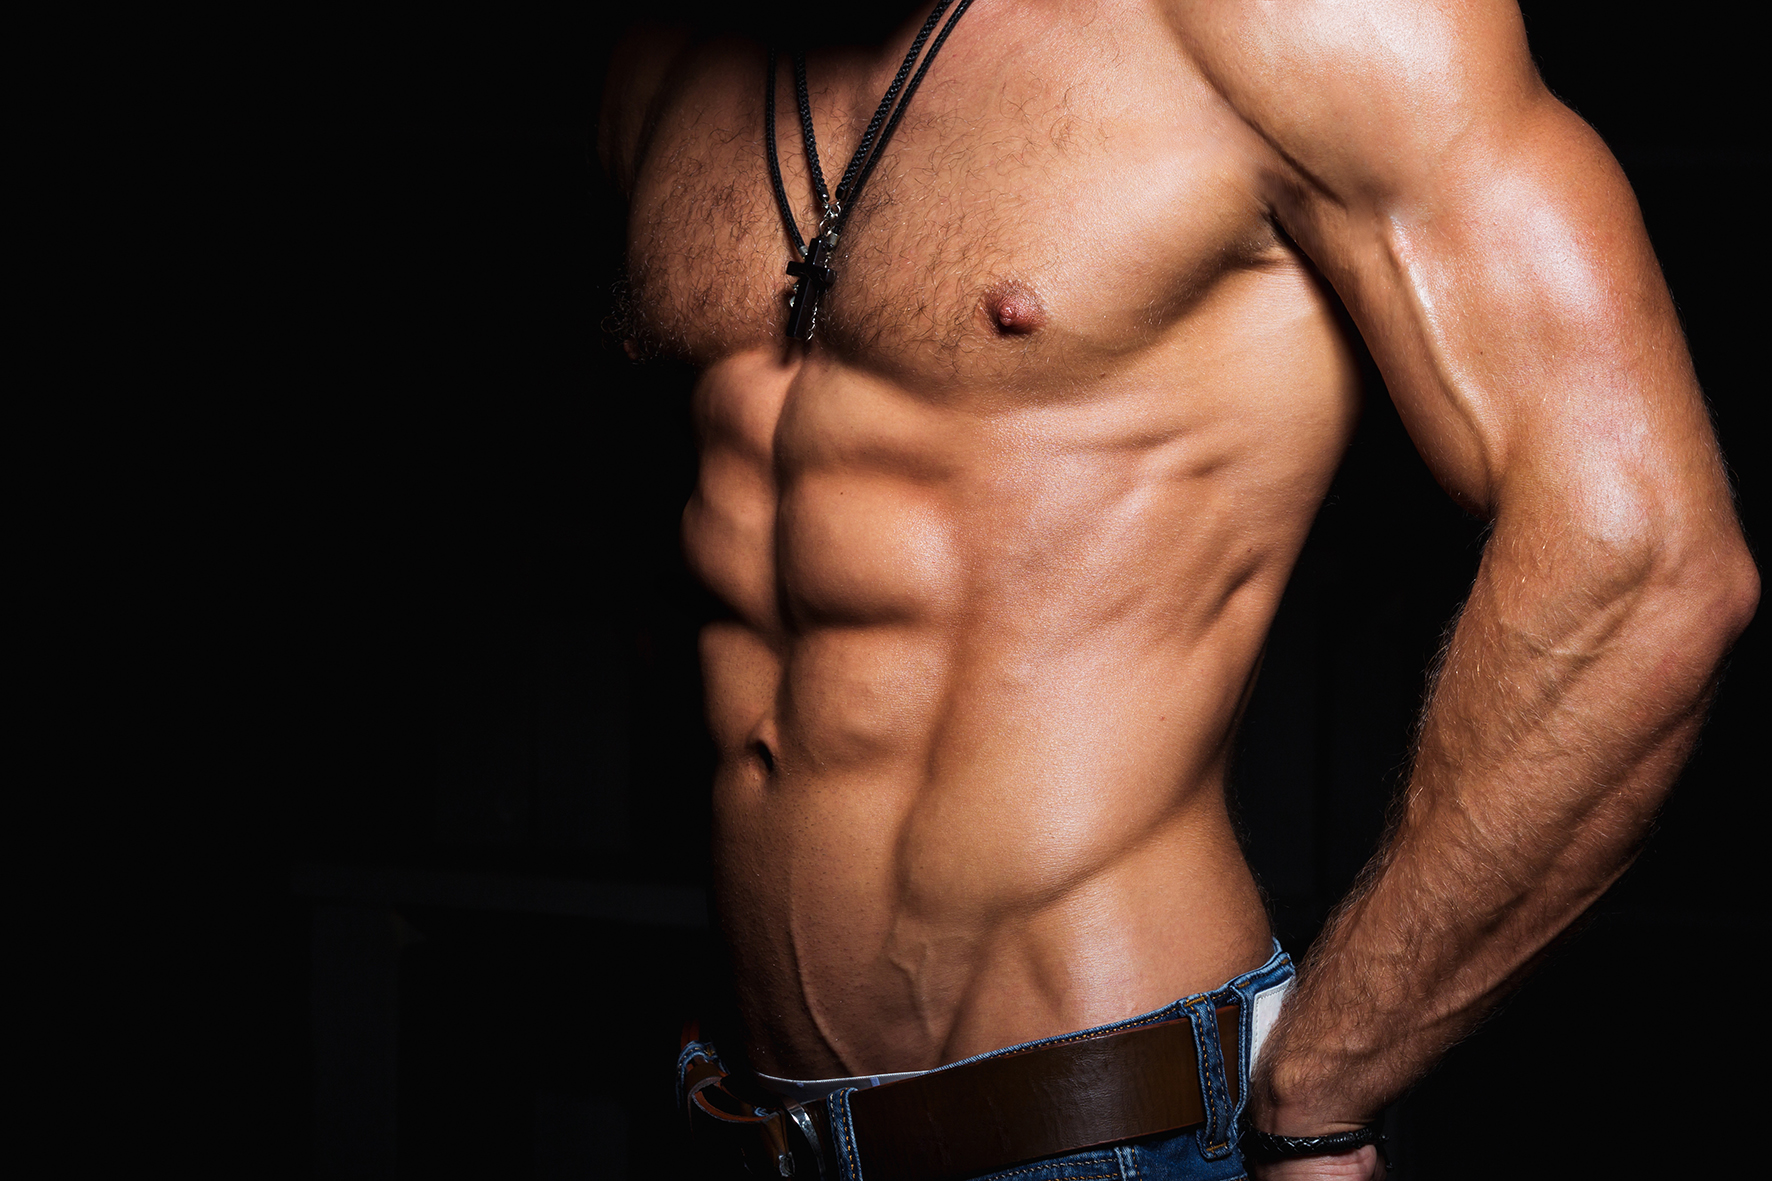 Muscular and sexy torso of young man with perfect abs